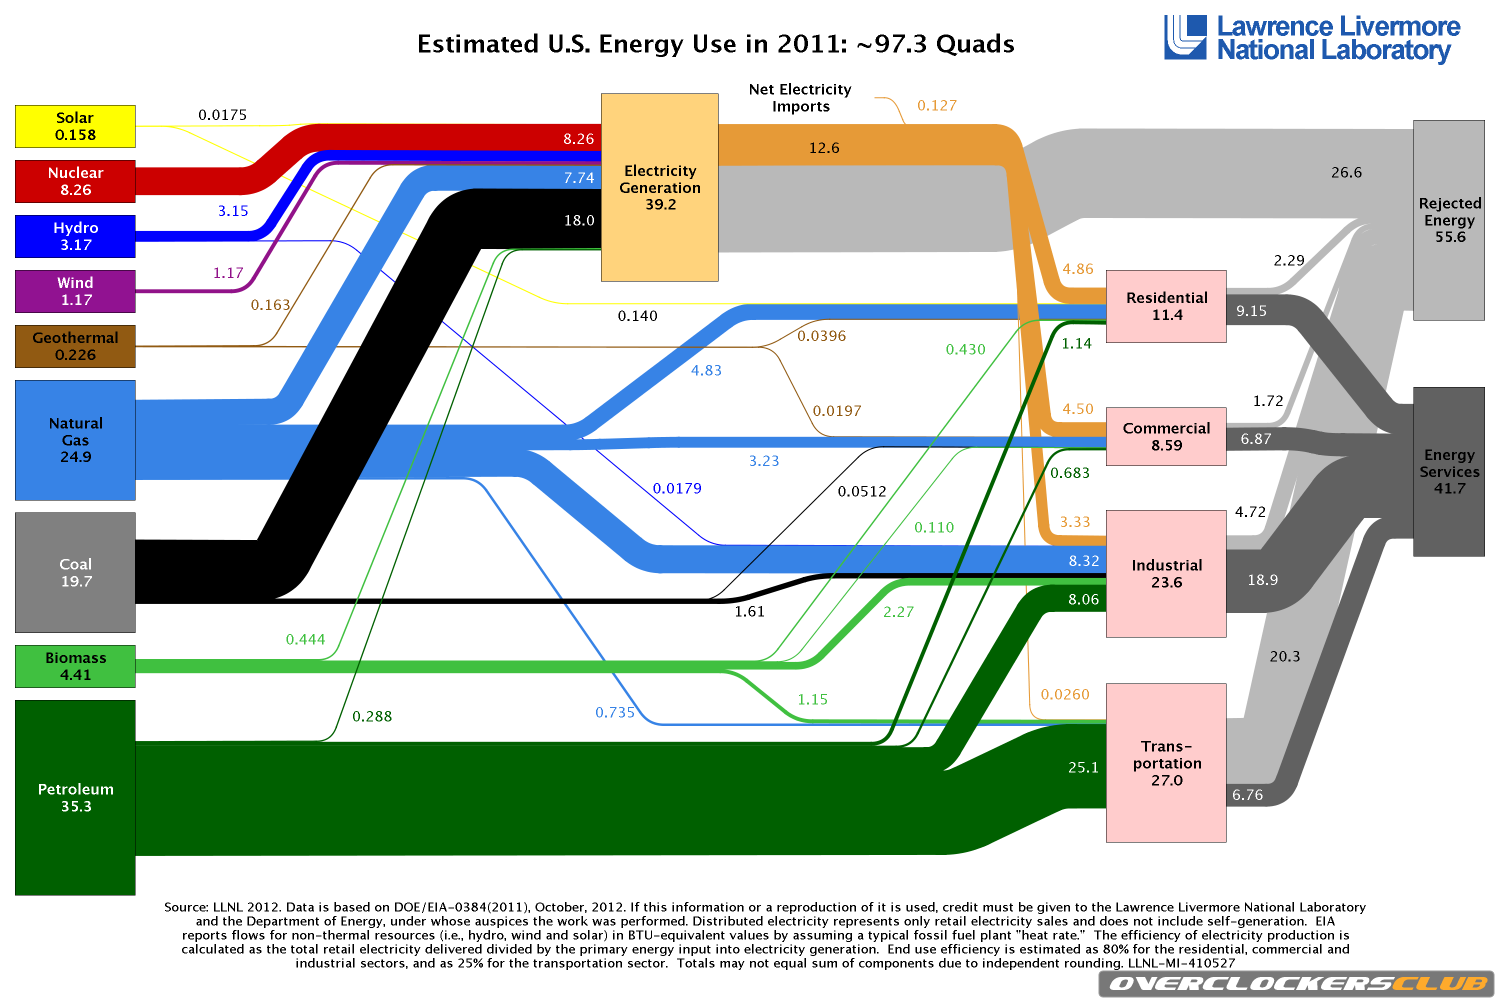 US Power Consumption Lower in 2011 than 2010